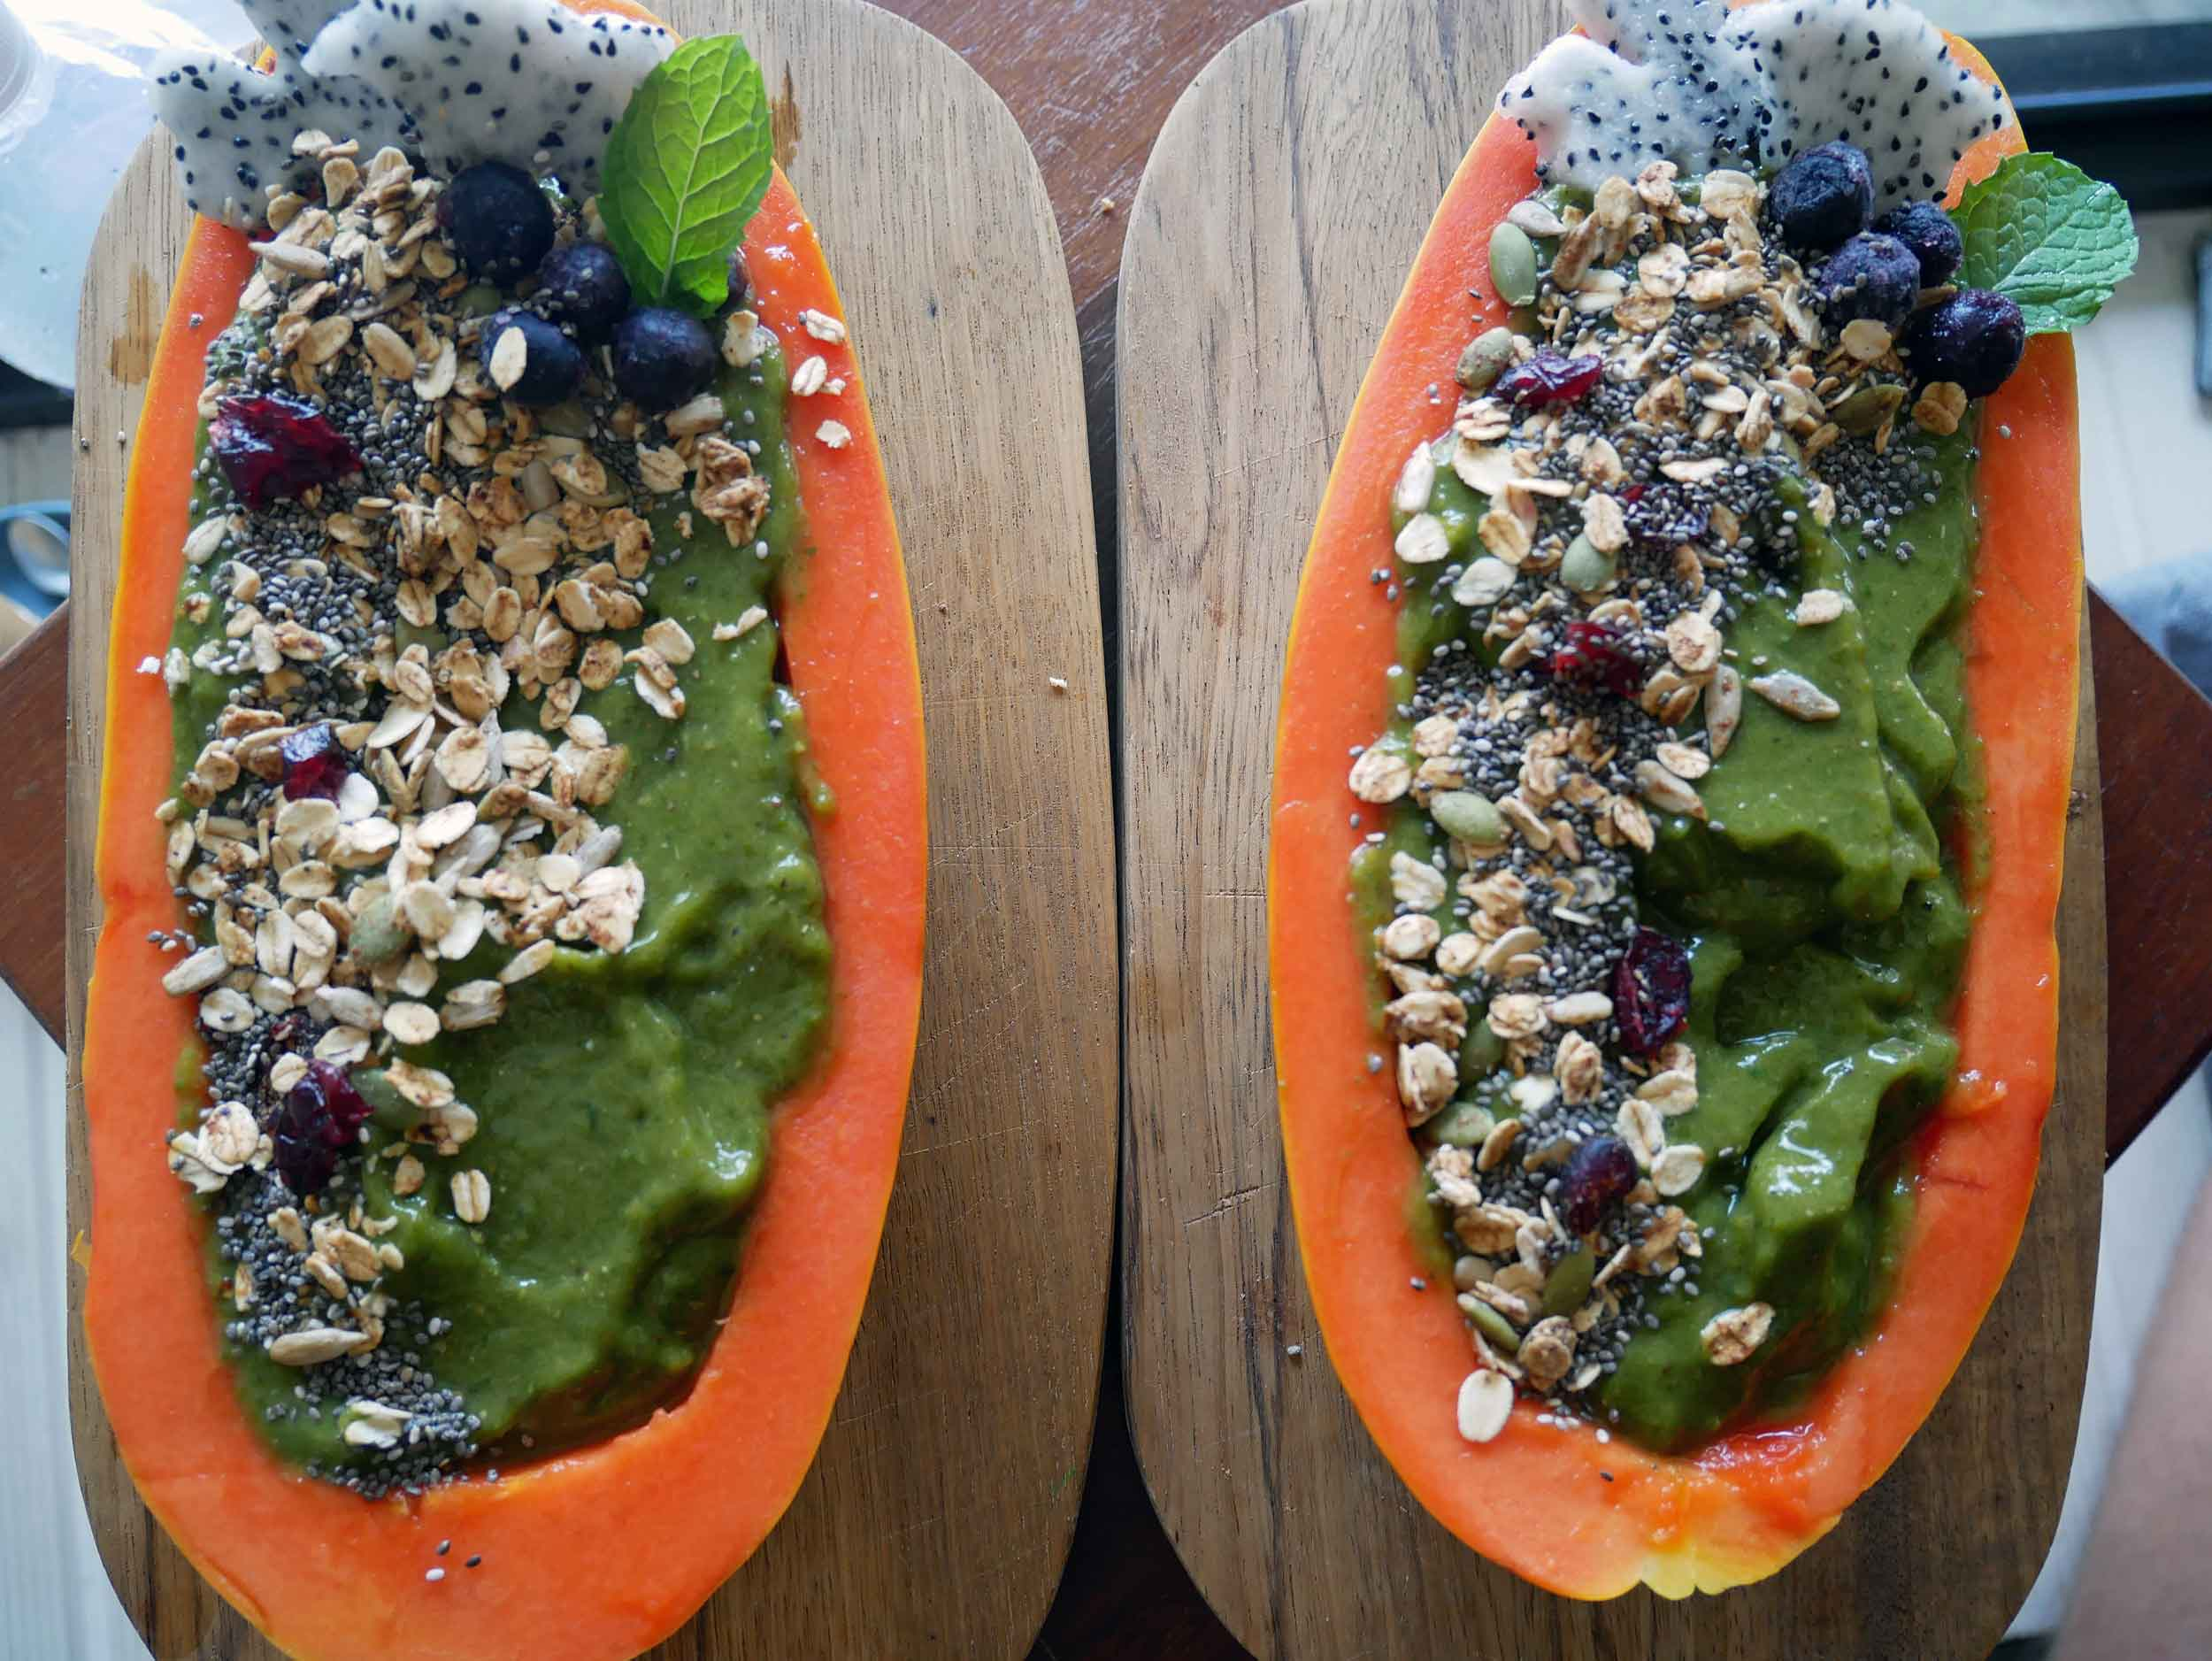 Our favorite dish at Wholey Wonder was the  papaya smoothie bowl  filled with raw, organic goodness.